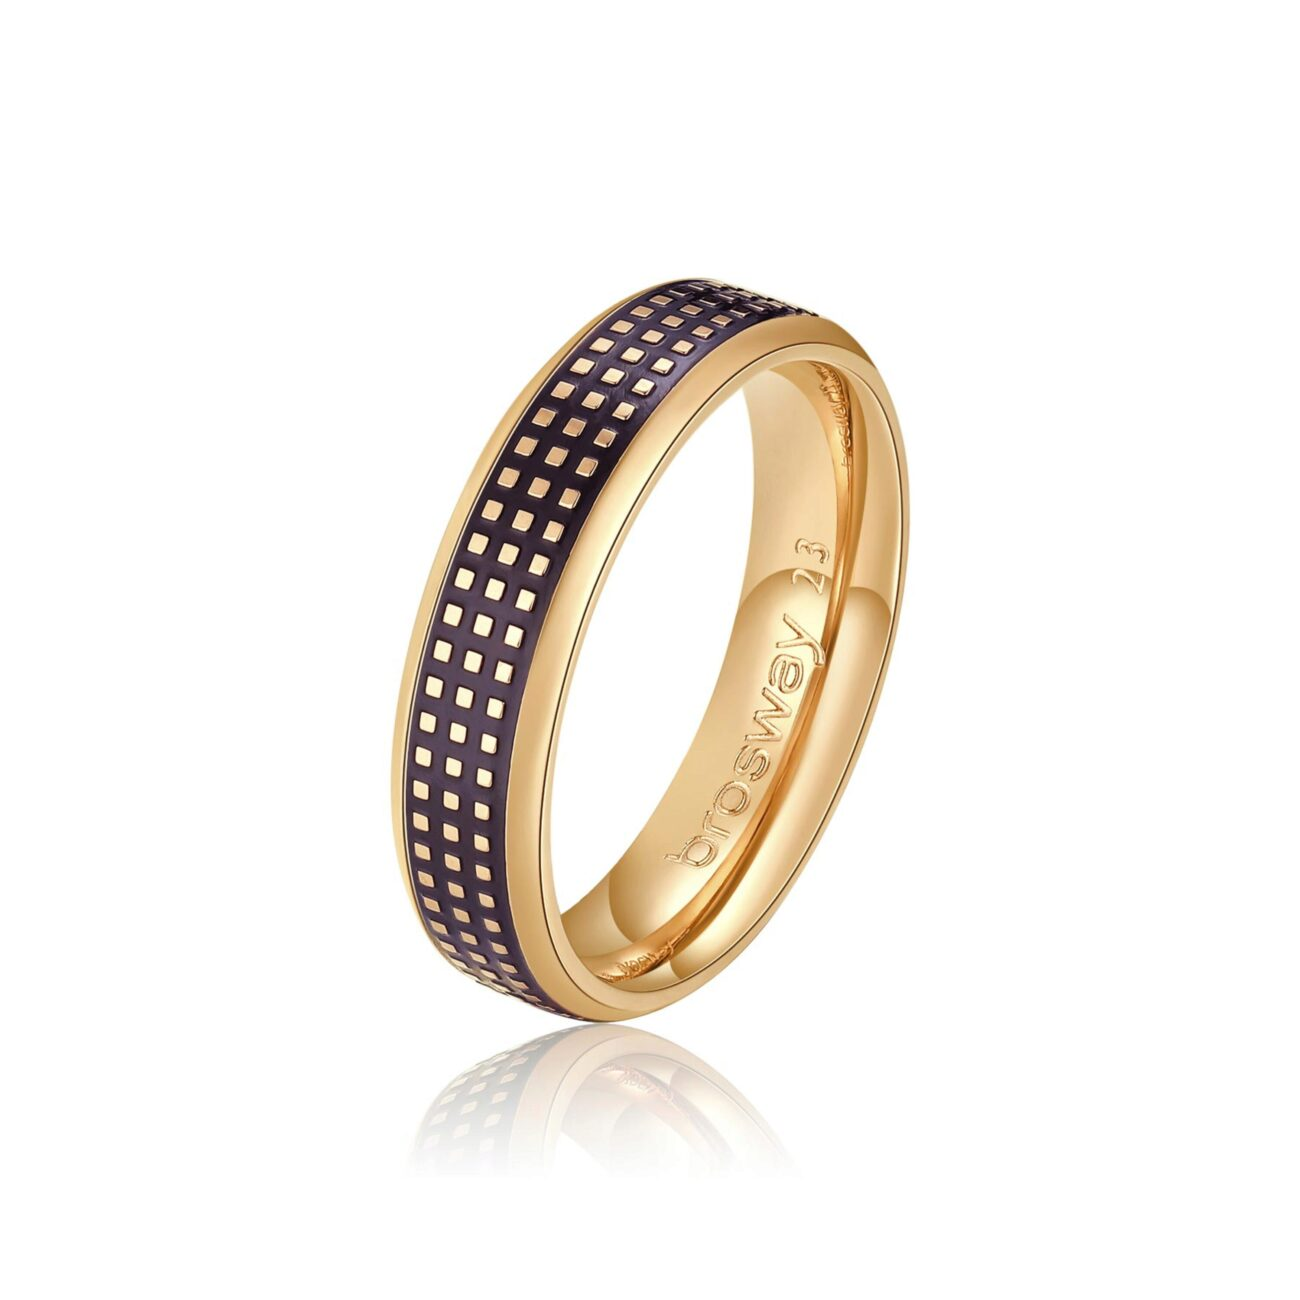 316L stainless steel ring, gold pvd with black enamel.